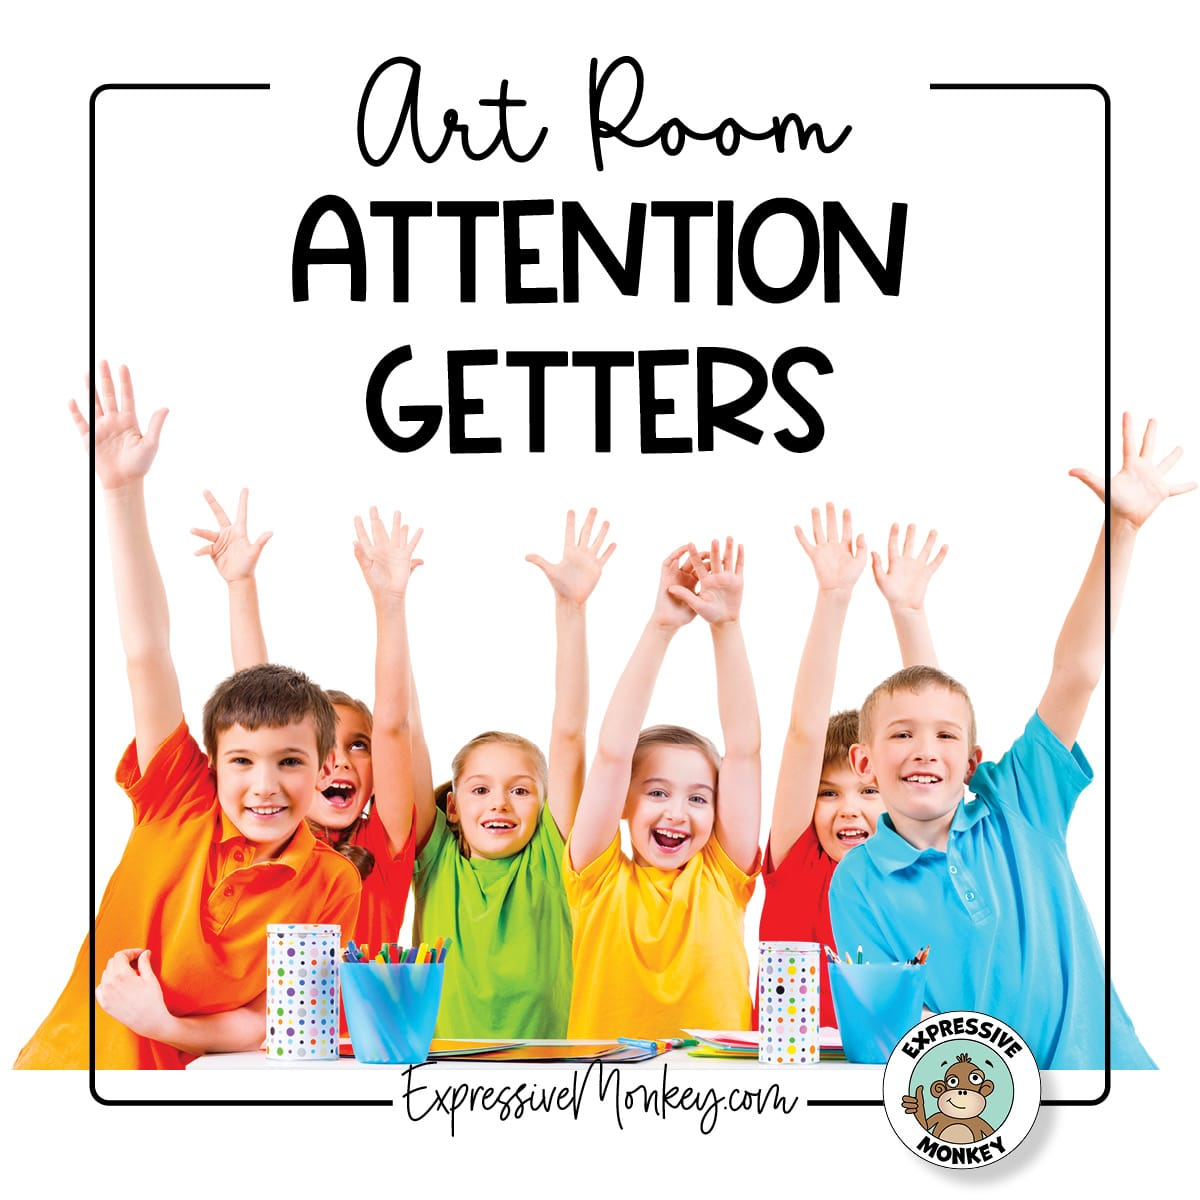 """Call and response example of a group of 6 students wearing different brightly colored shirts.  The students are all gathered by a white table and have hands in the air and smiles on their faces.  The text says, """"Art Room Attention Getters."""""""